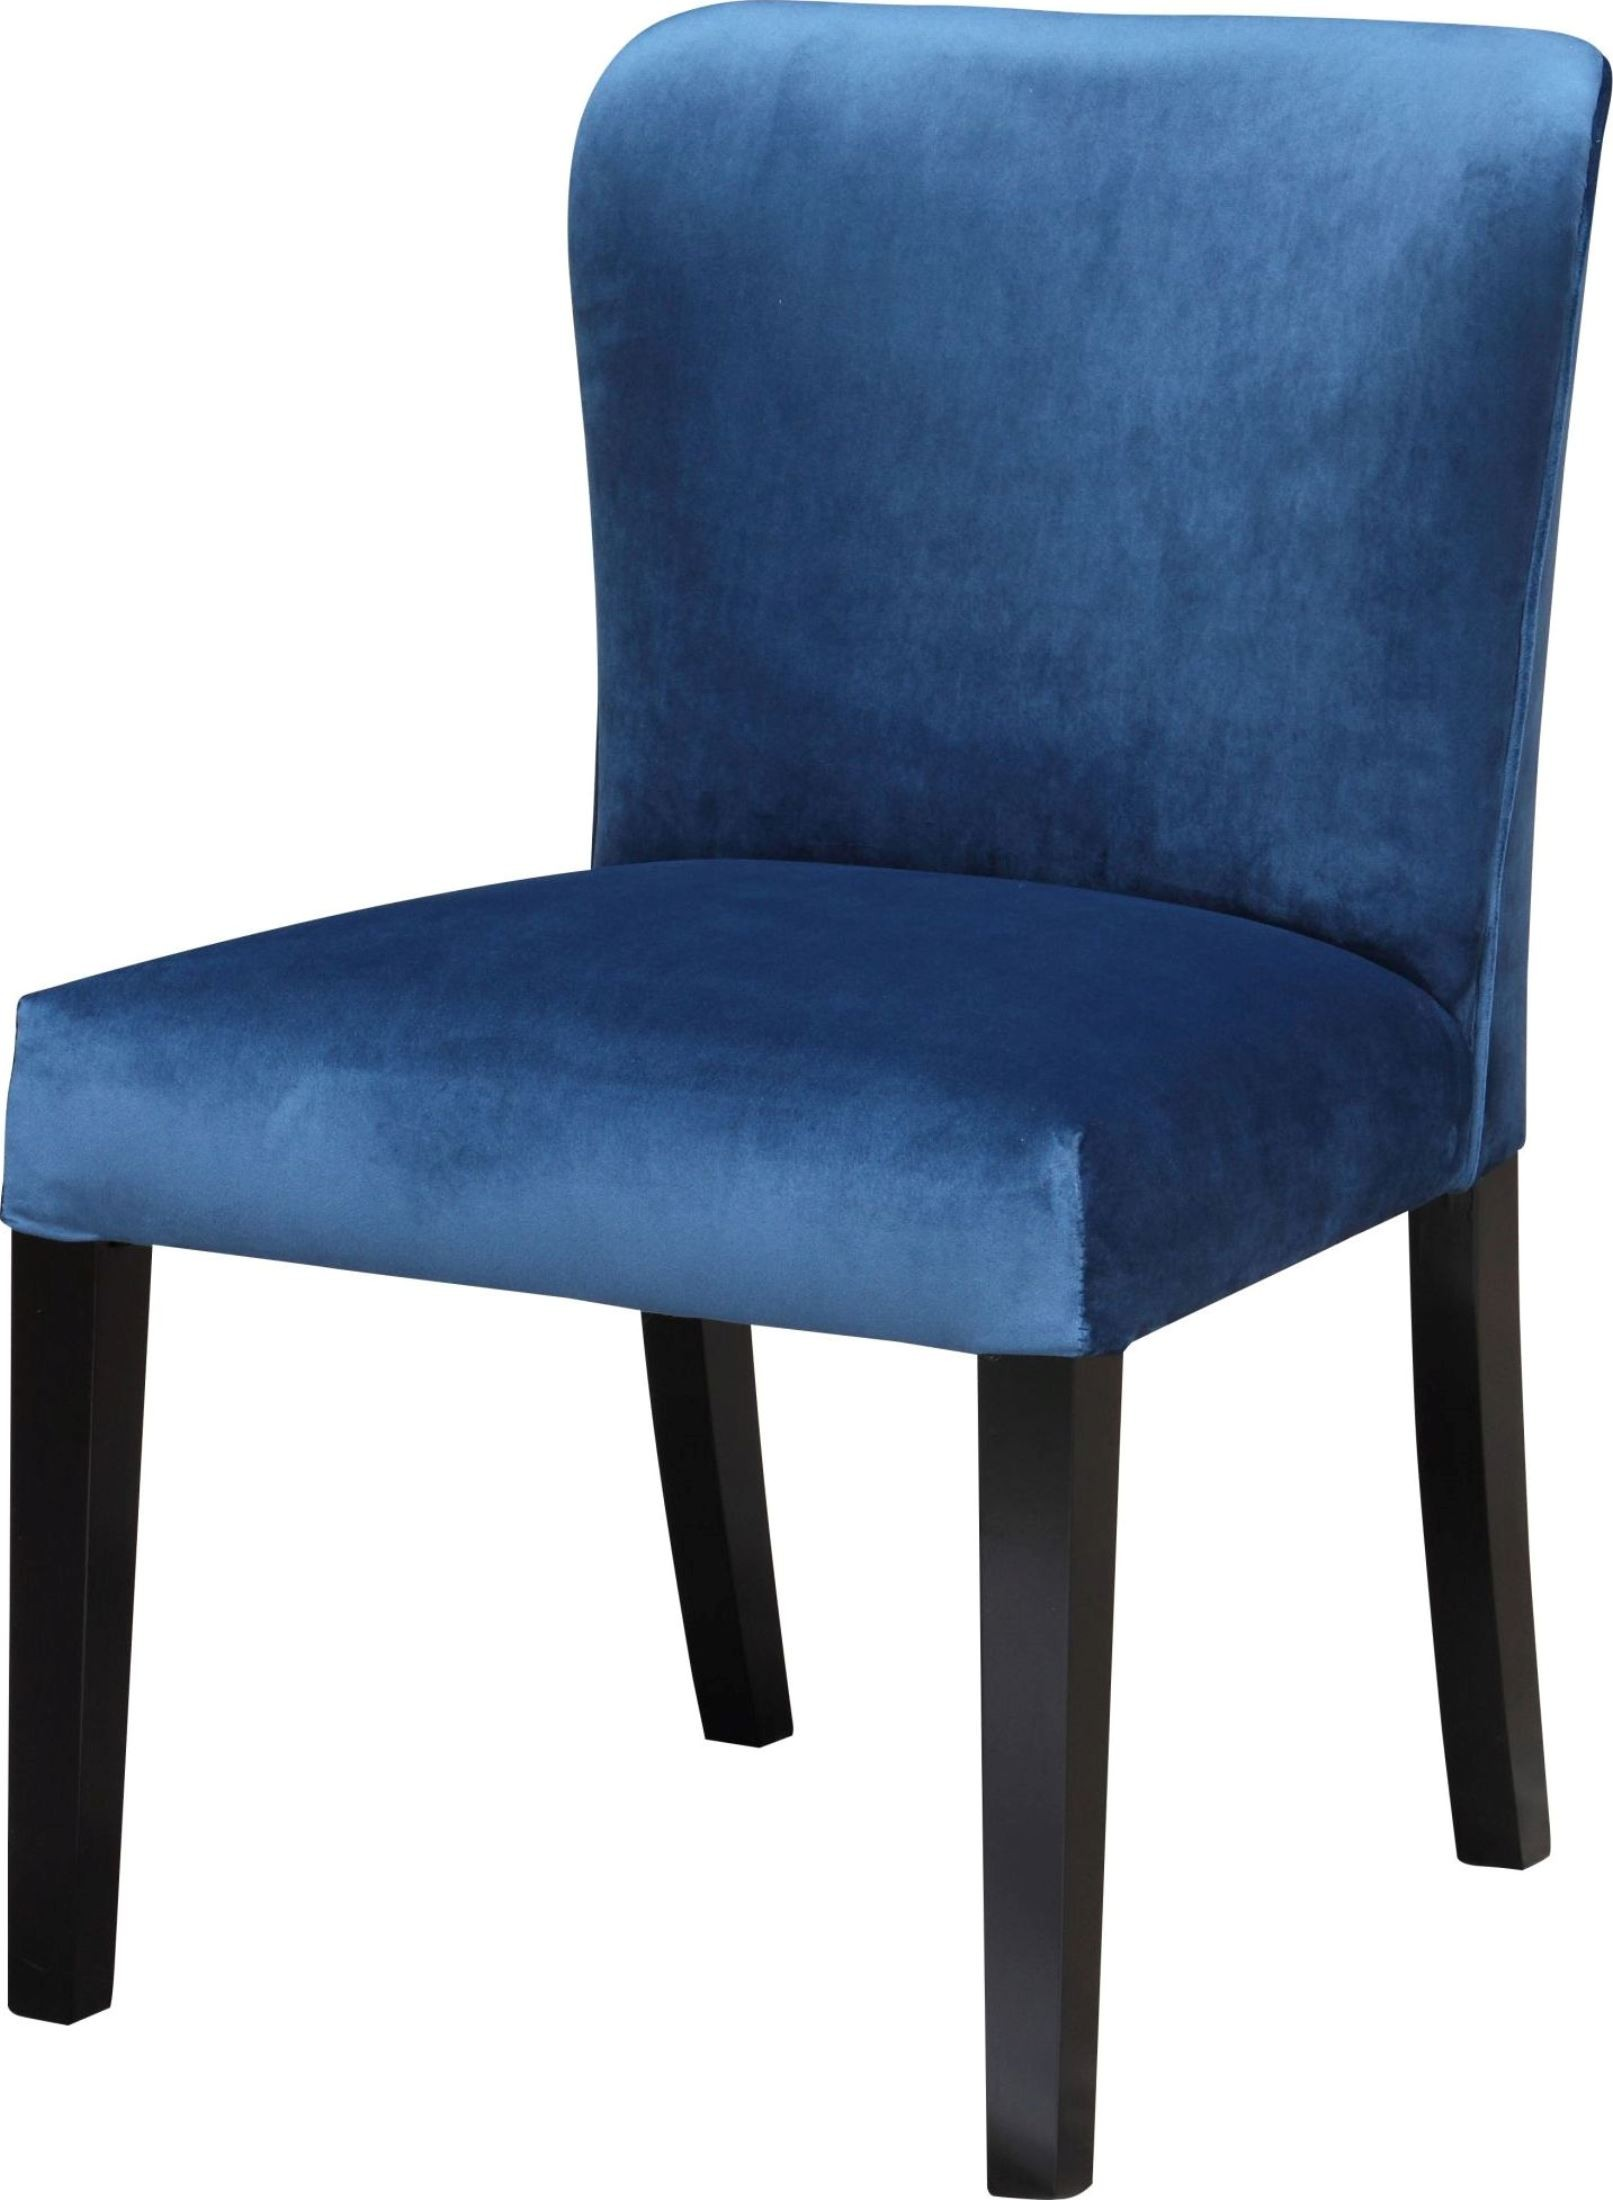 Hopper Blue Dining Chair Set Of 2 From Moes Home Coleman Furniture